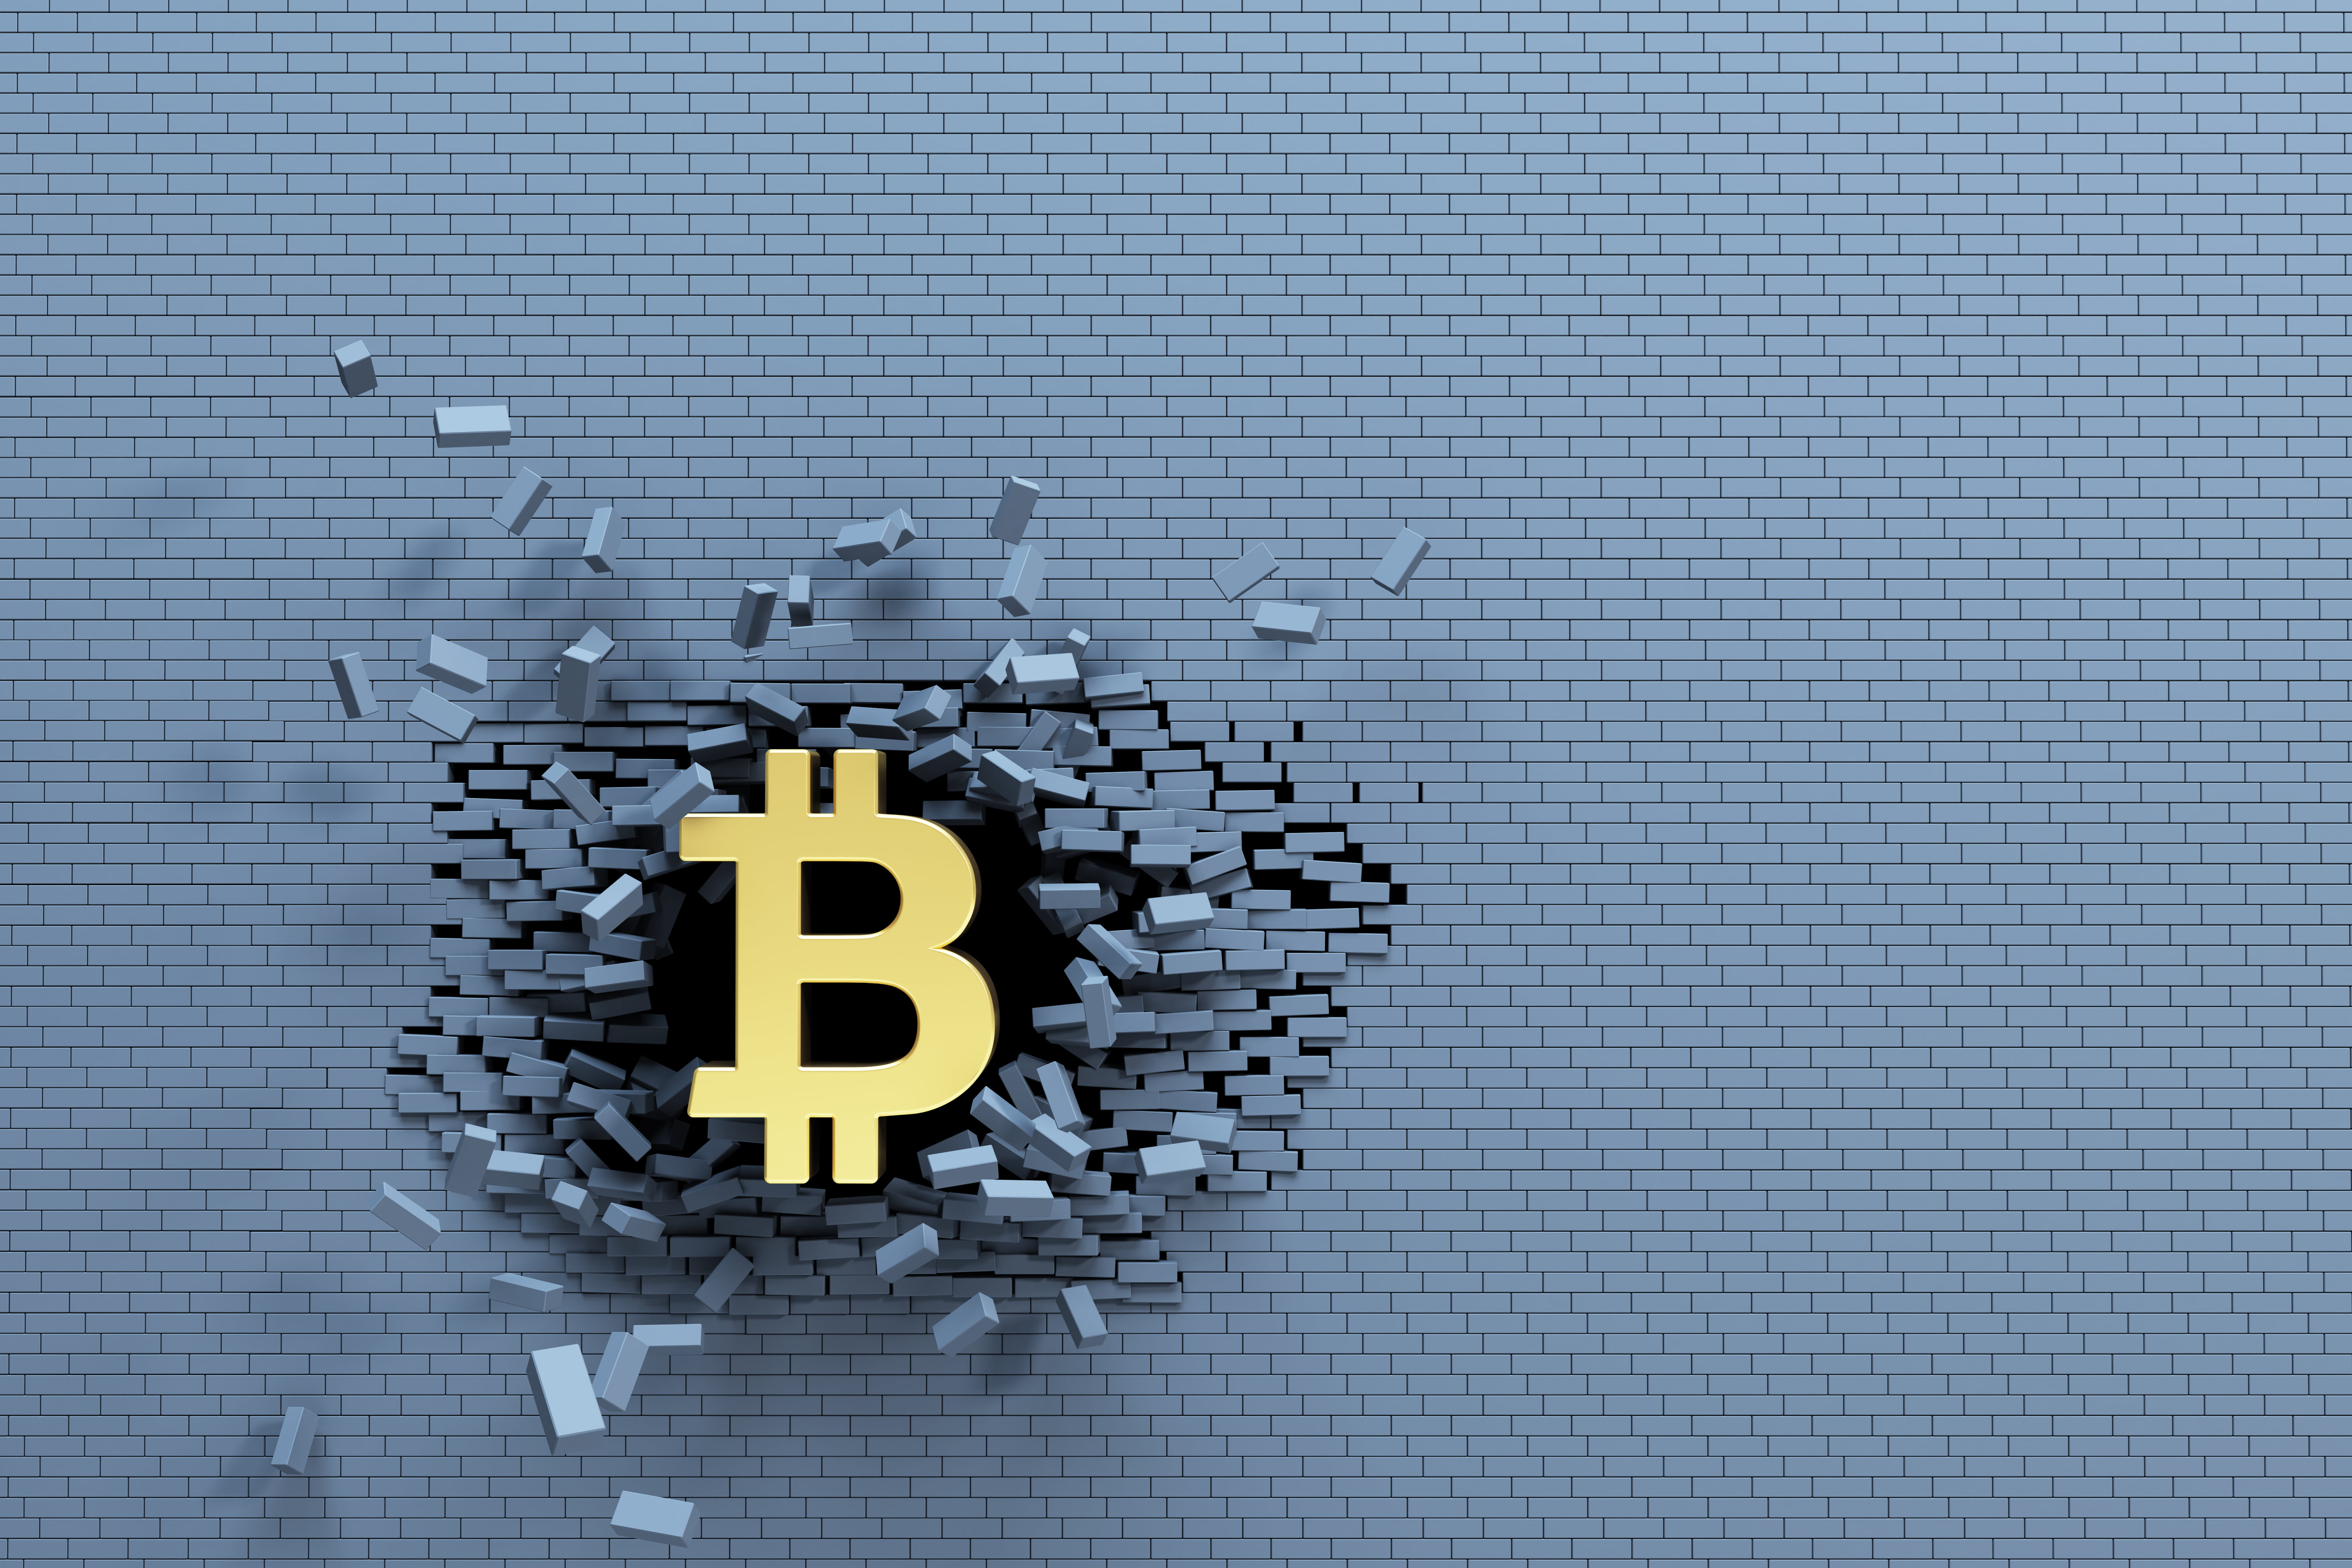 Altcoin Market Is Failing to Produce Utility, Only Bitcoin